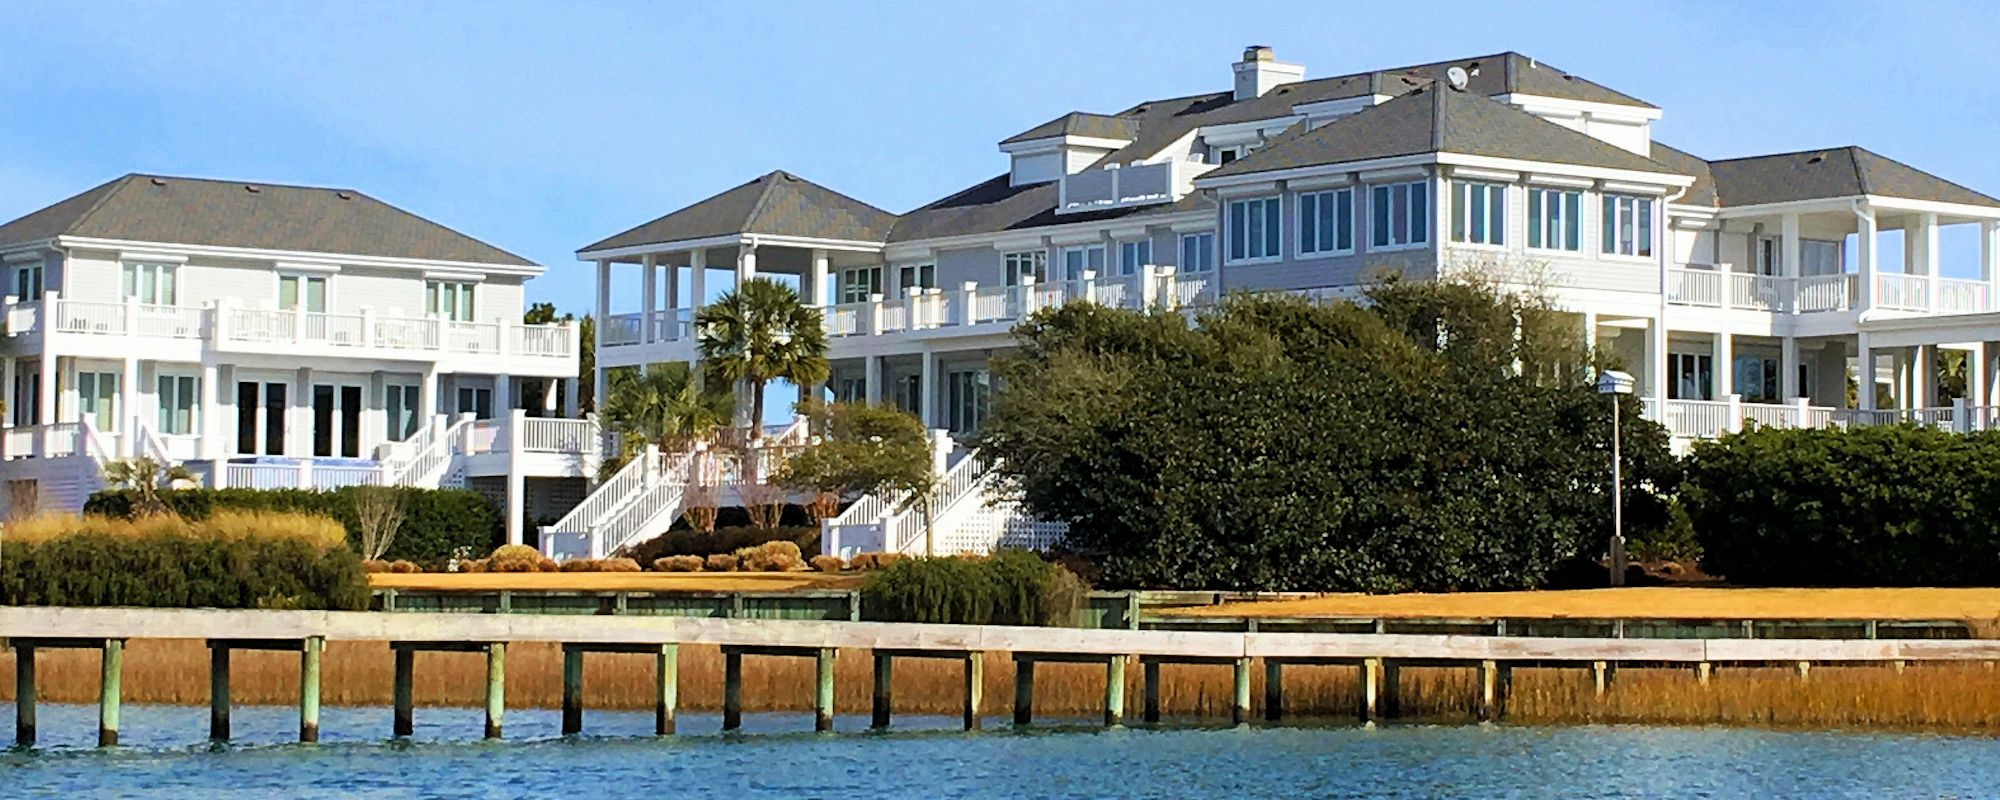 Luxury Neighborhoods - Communities - Figure Eight Island